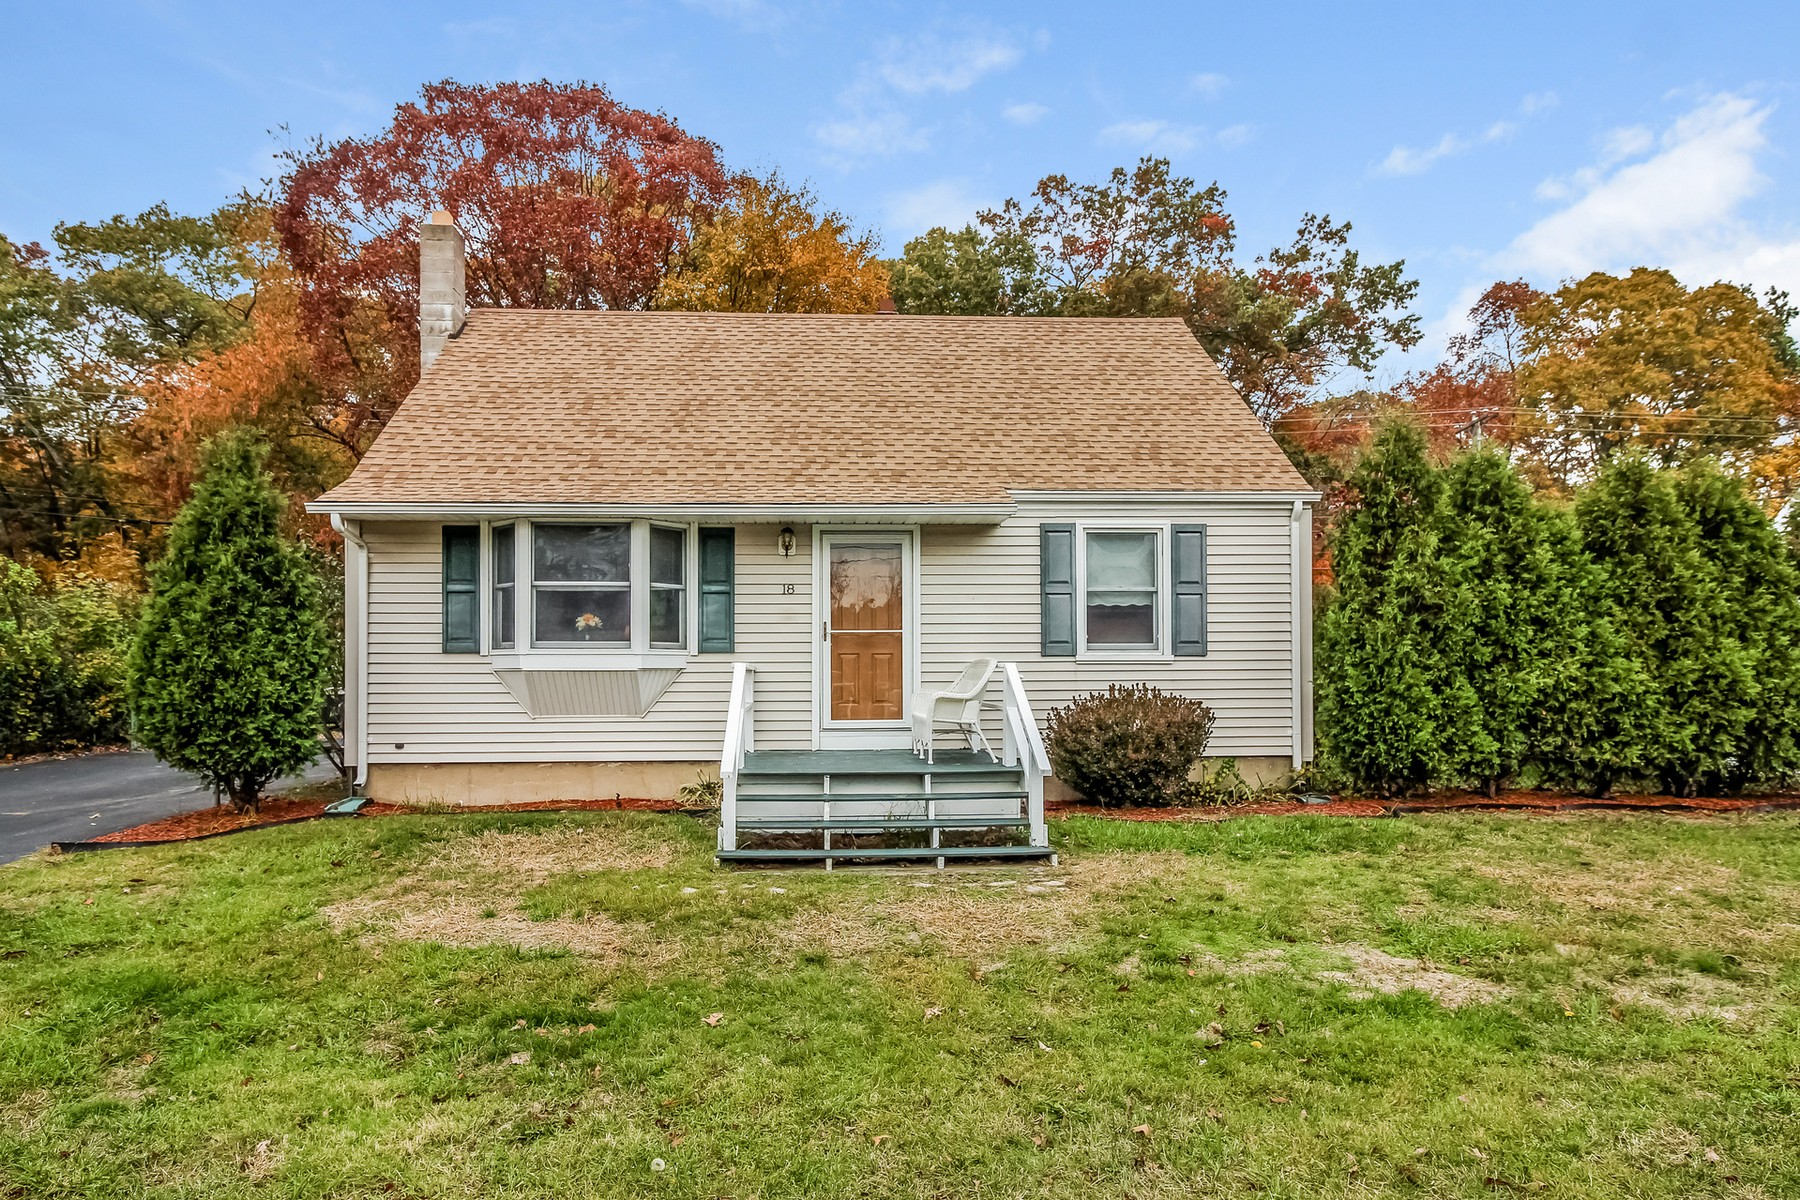 Single Family Home for Sale at Charming Cape 18 Knoll Dr Groton, 06340 United States